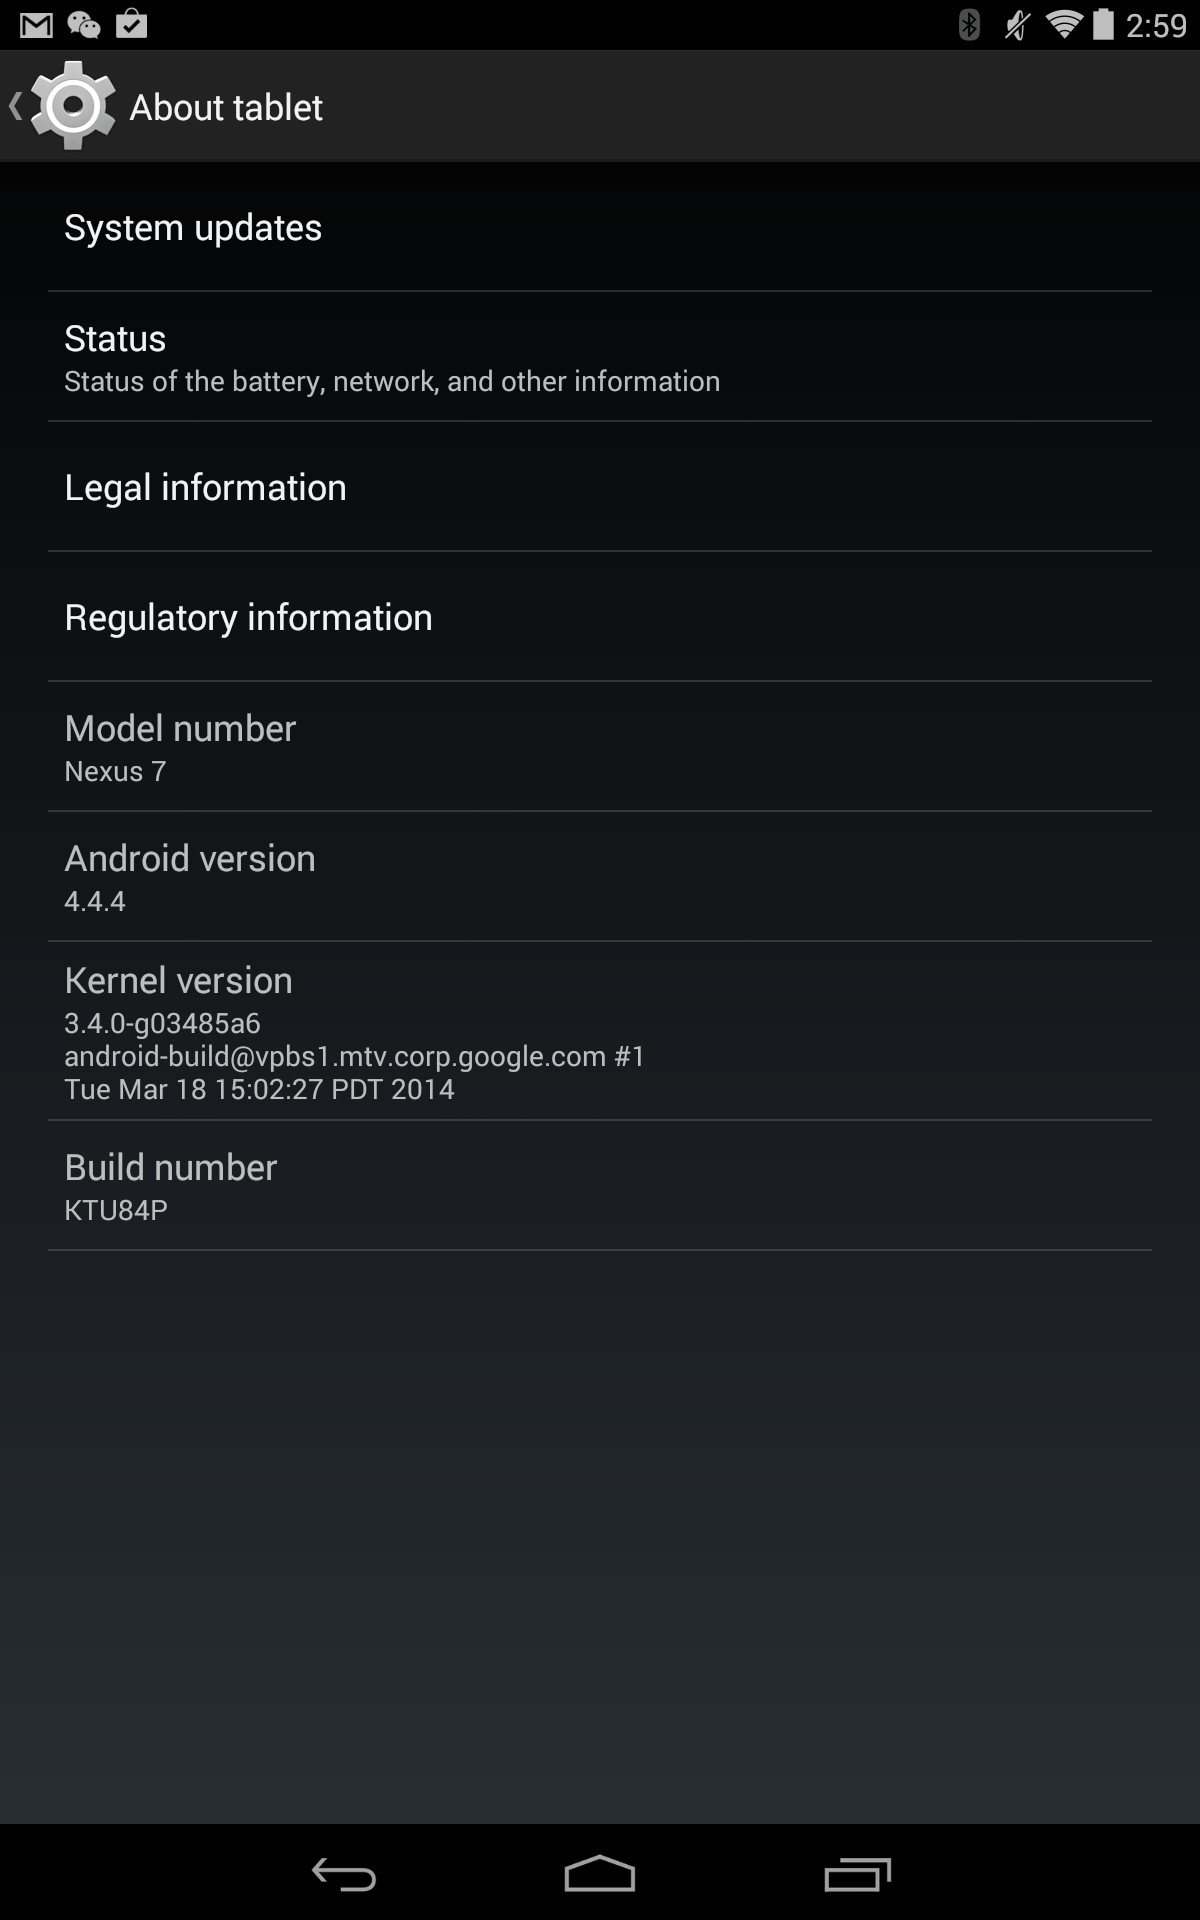 Android 4.4.4 About tablet